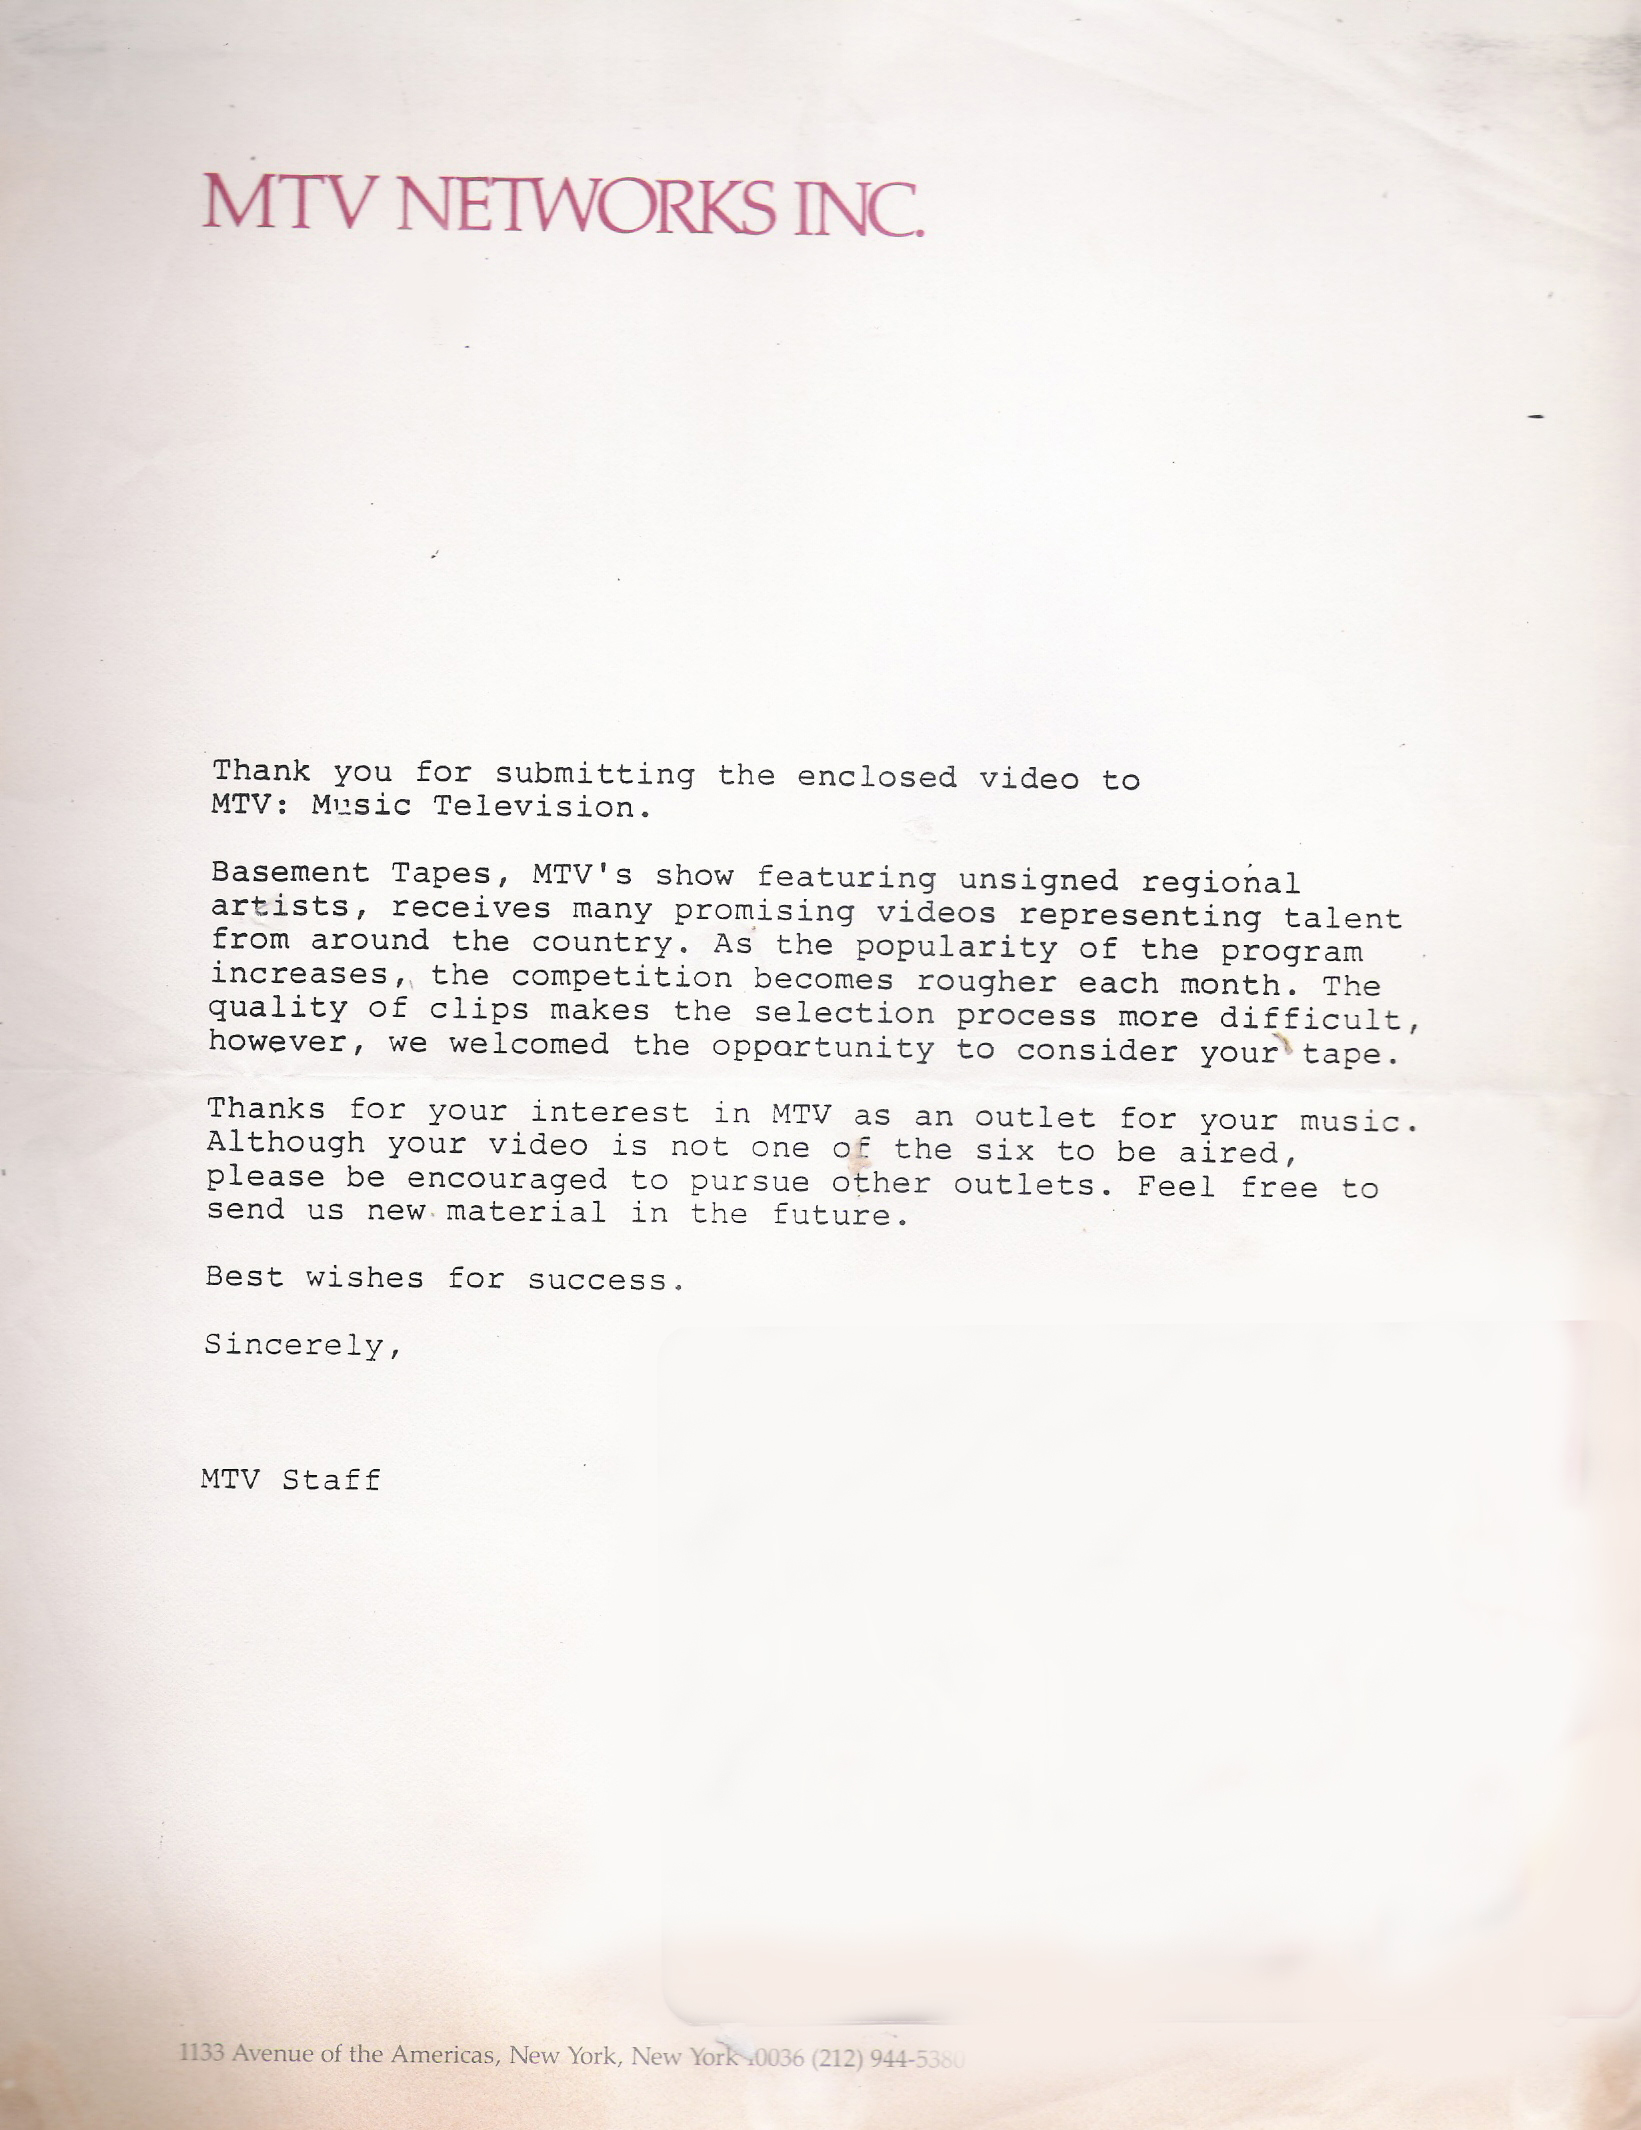 MTV letter August 1985 - Rejected!